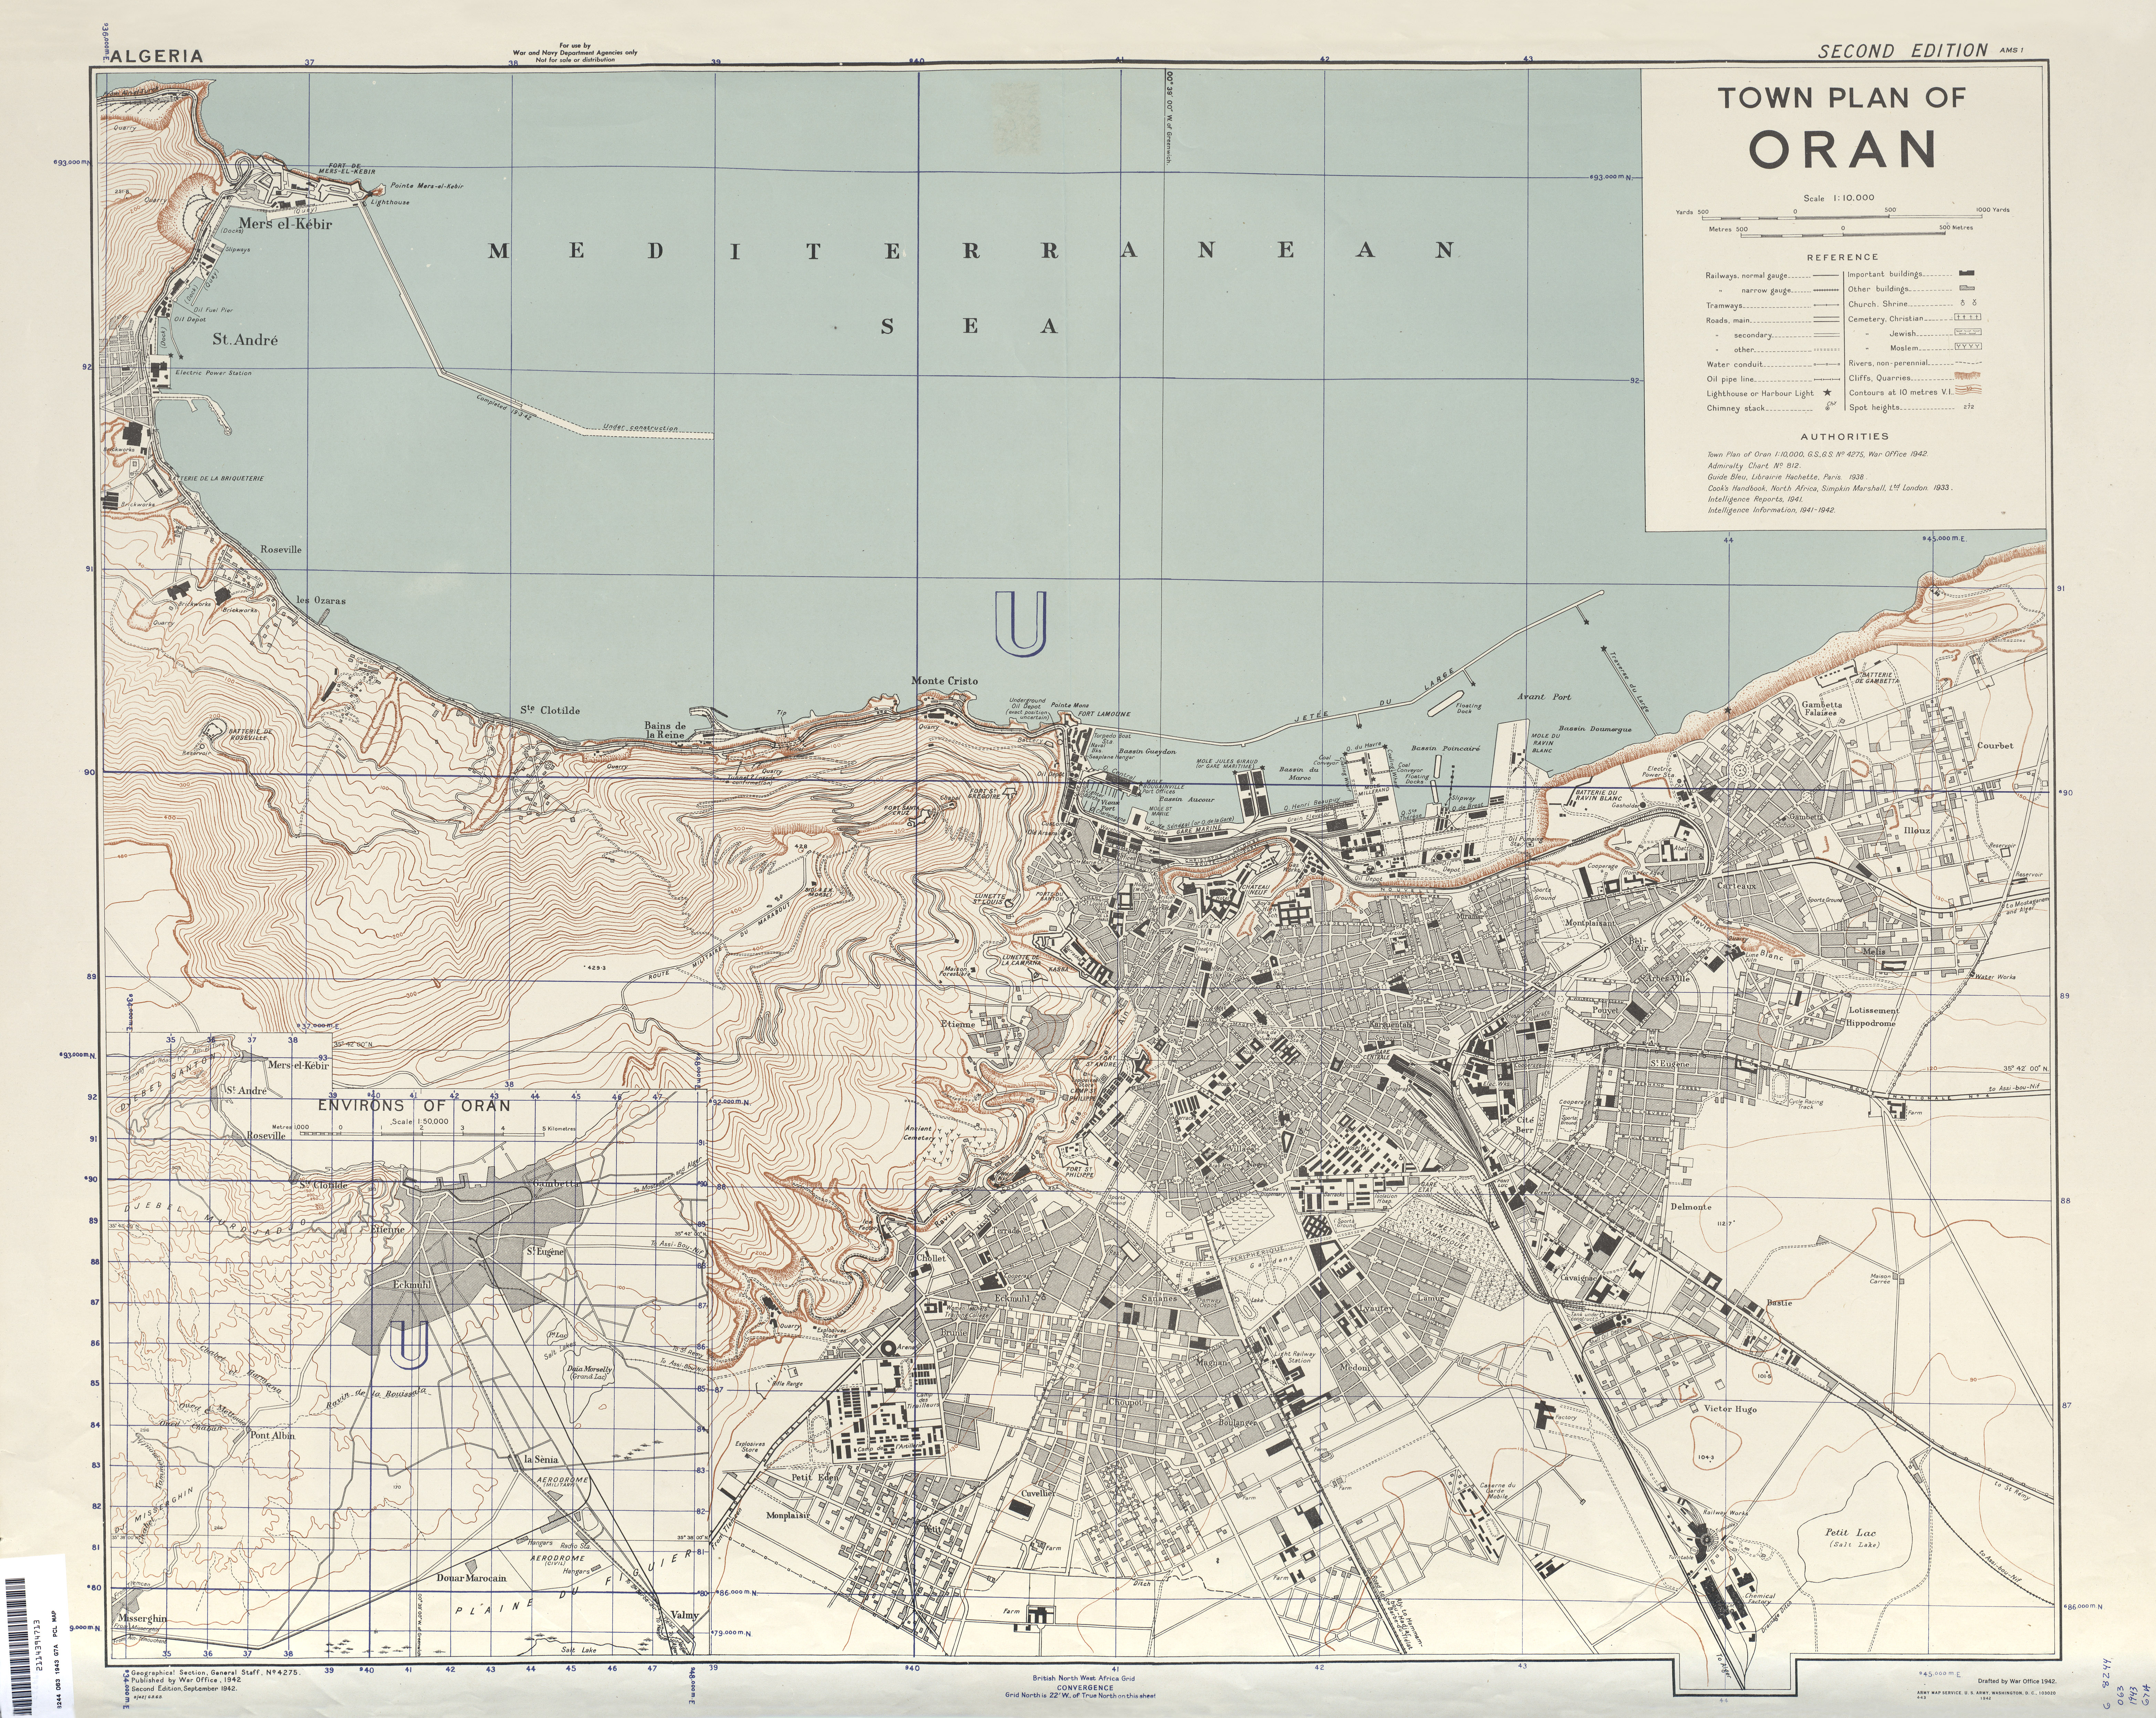 Algeria City Plans PerryCastañeda Map Collection UT Library - Cities map of algeria